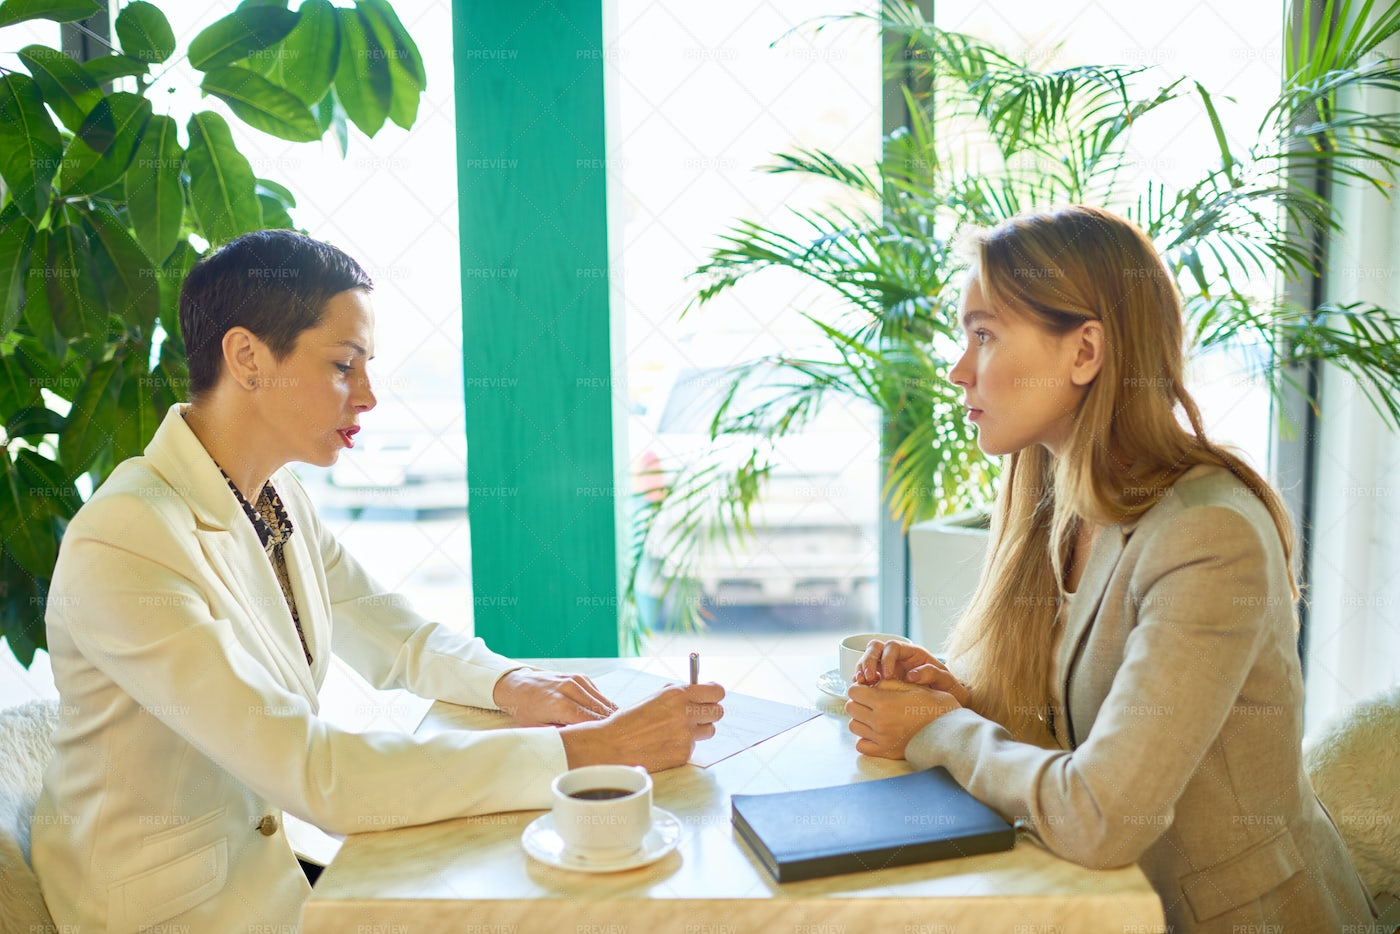 Job Interview Meeting In Cafe: Stock Photos